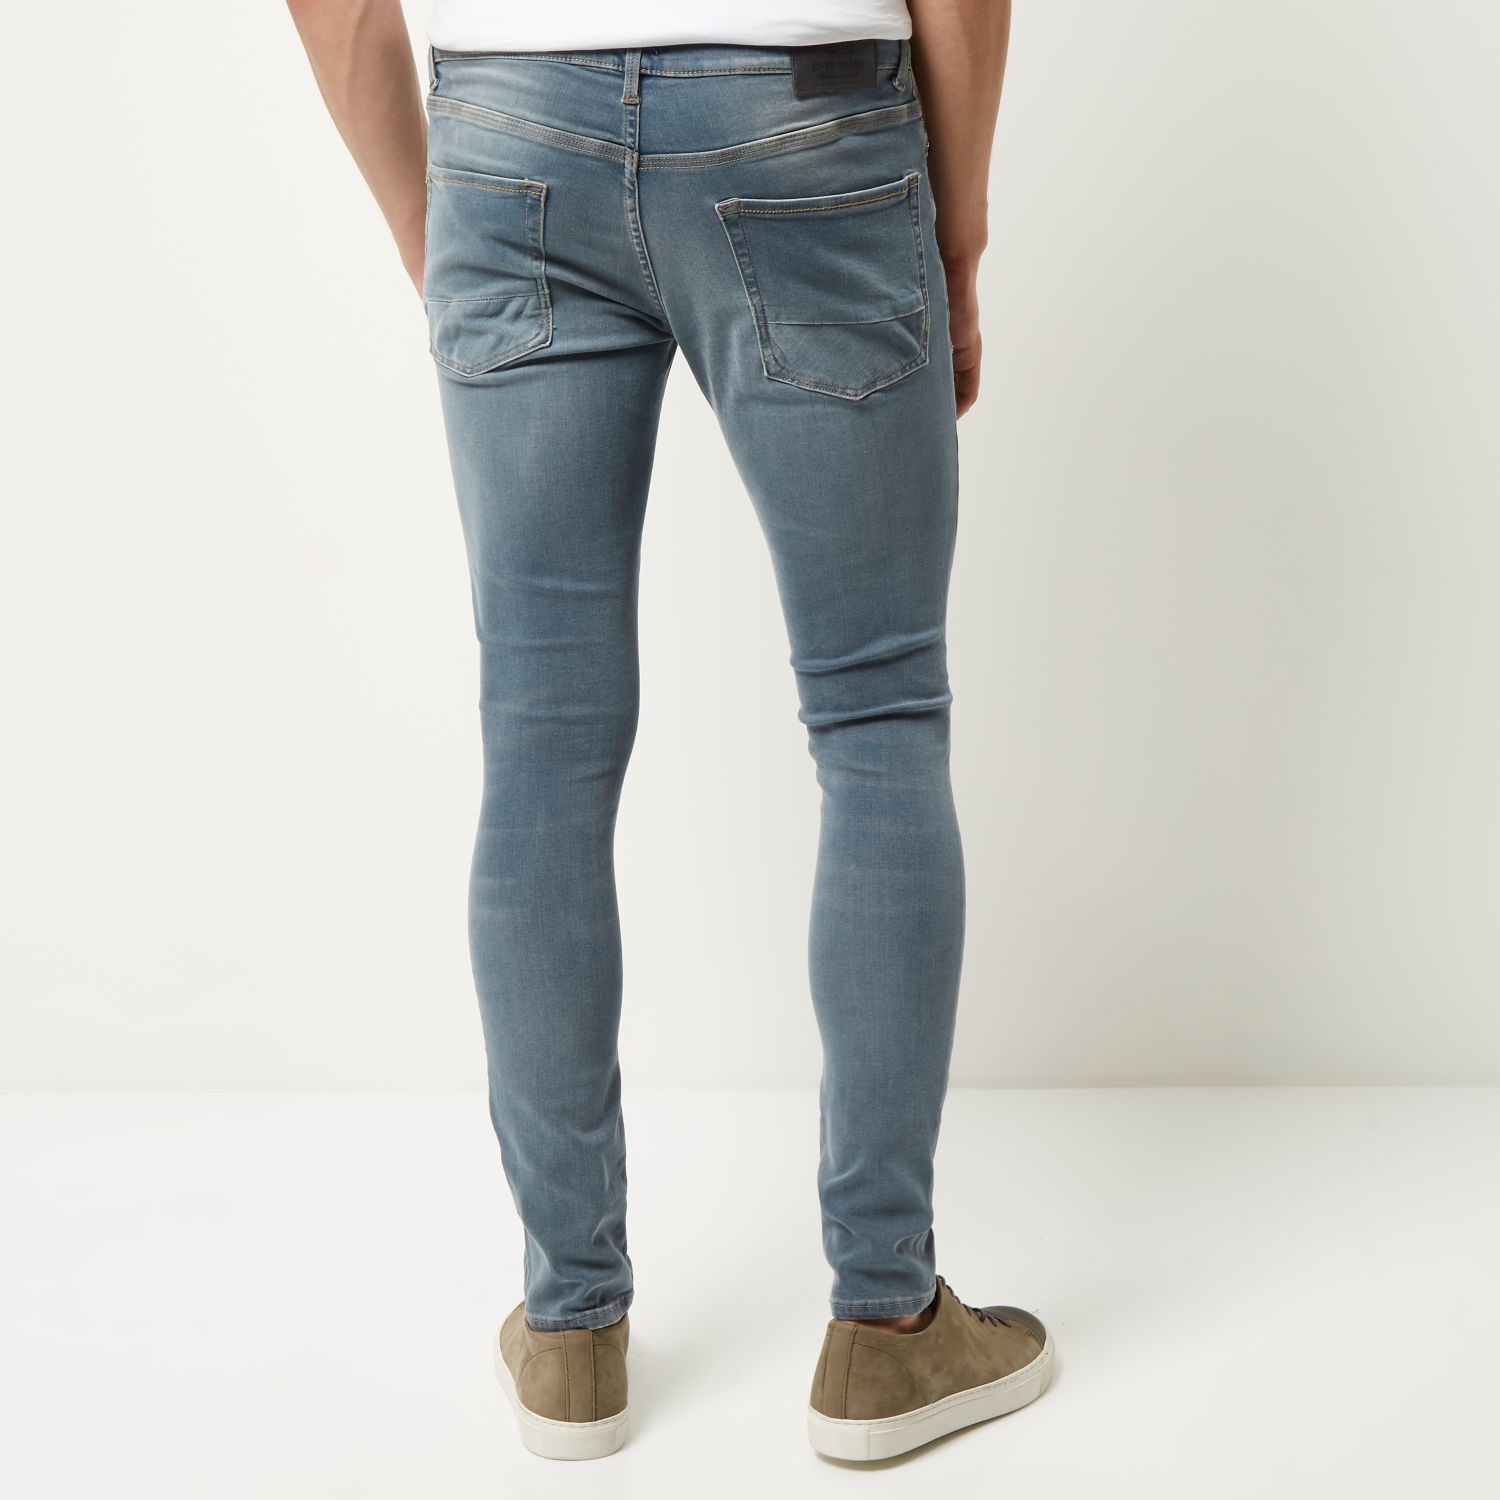 Mens Mid Blue Dylan super skinny jeans River Island Footaction Online Lowest Price Cheap Price Discount Pay With Visa Aaa Quality p9UCB